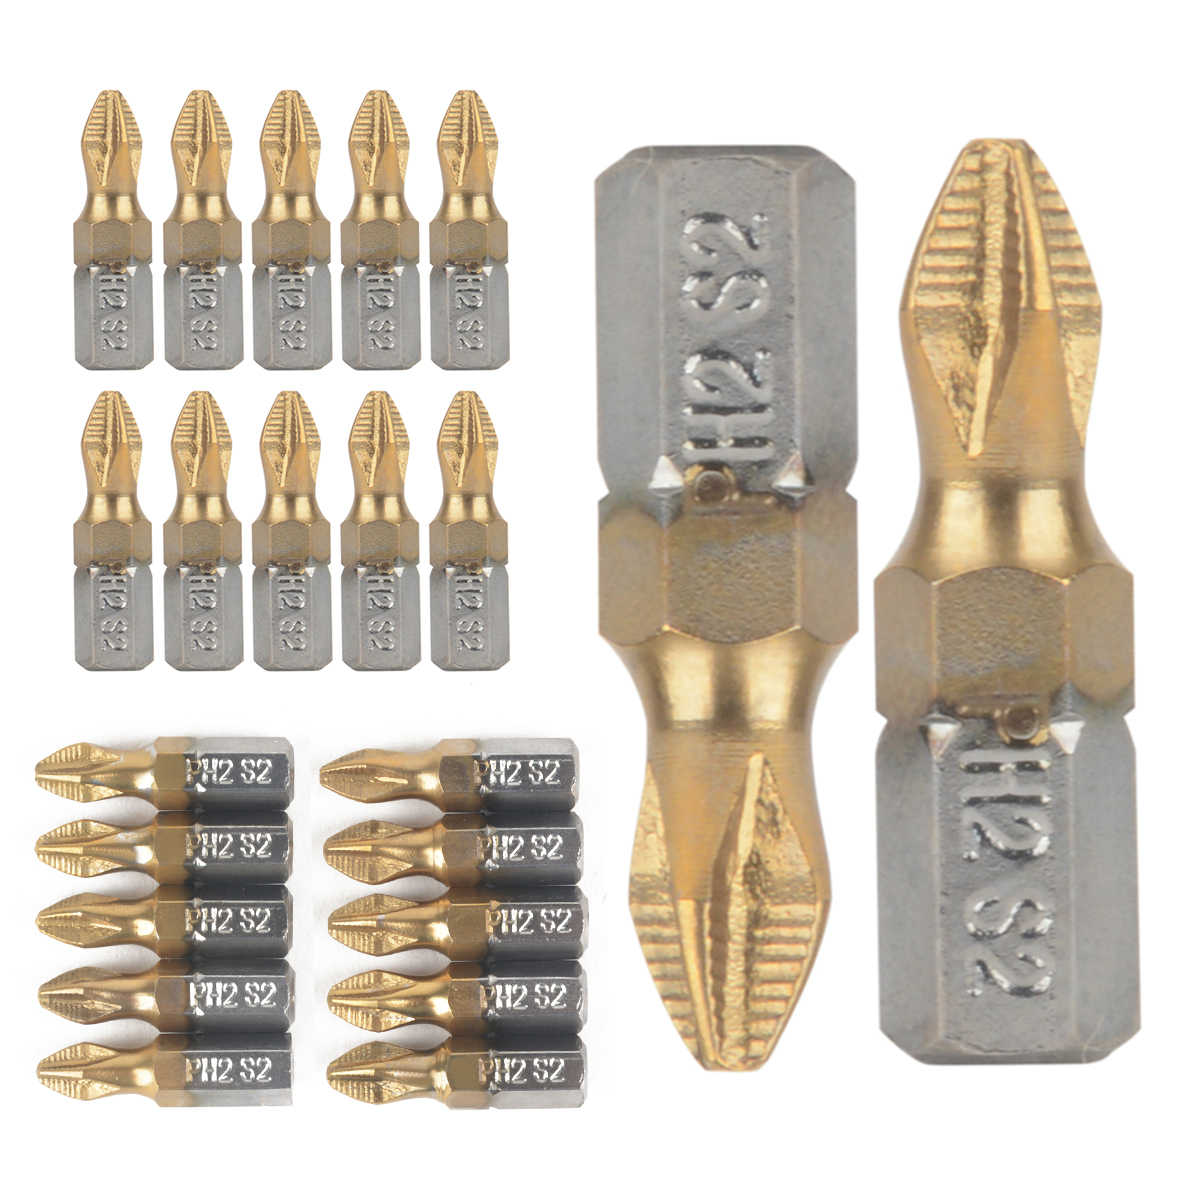 "10pcs Anti Slip PH2 Screwdriver Bit 25mm Length 1/4"" Shank Titanium Coated Drill Bits For Electric Drill"